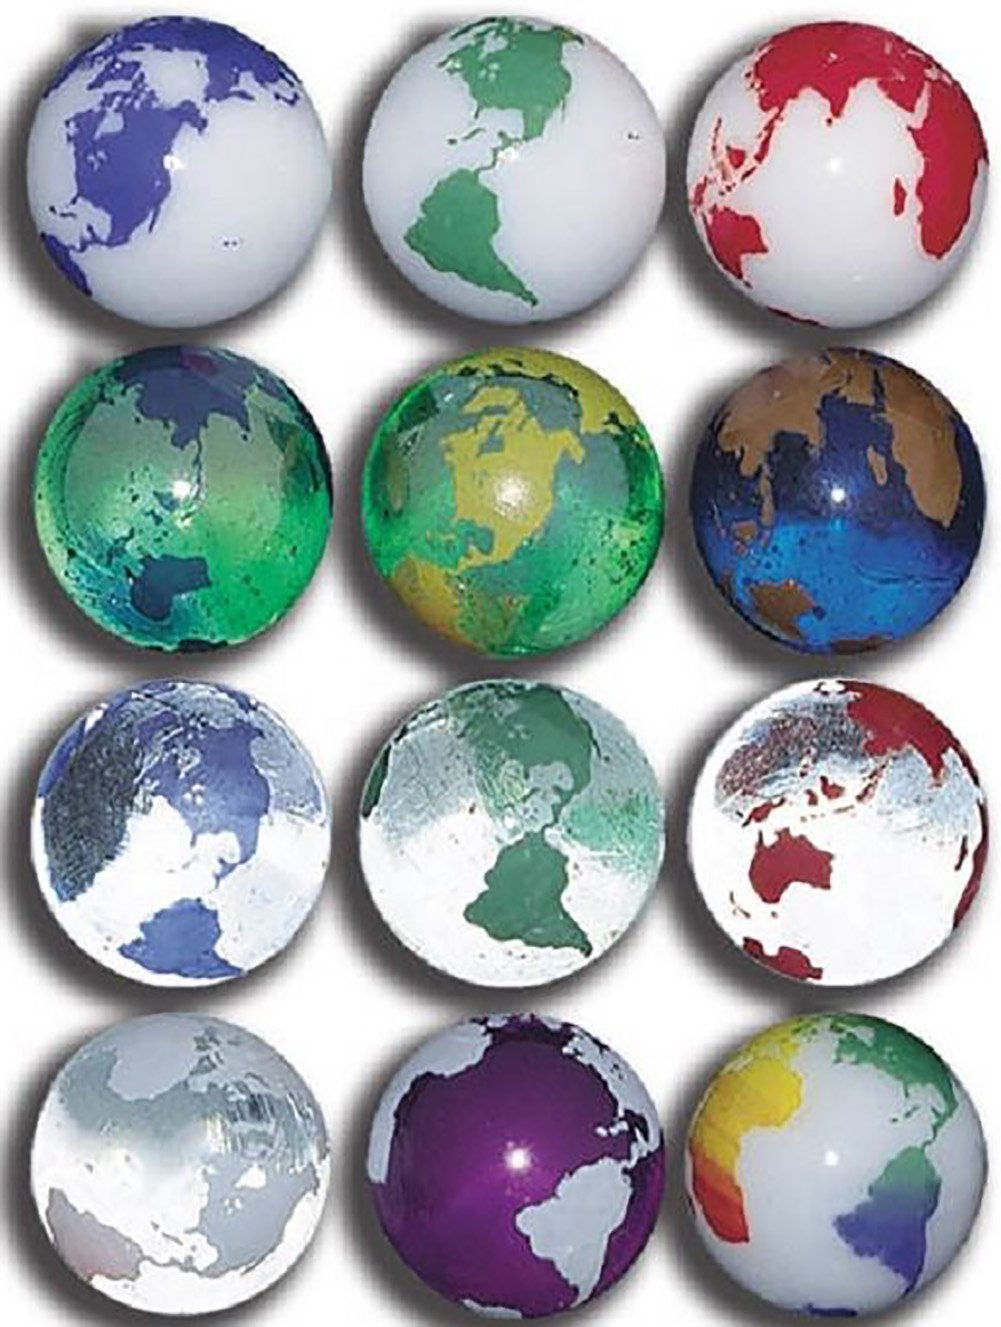 """Unique & Custom {7/8'' Inch} Set Of 50 Big """"Round"""" Clear & Opaque Marbles Made of Glass for Filling Vases, Games & Decor w/ Educational Bold Vibrant Earth Globe Design [Assorted Colors]"""